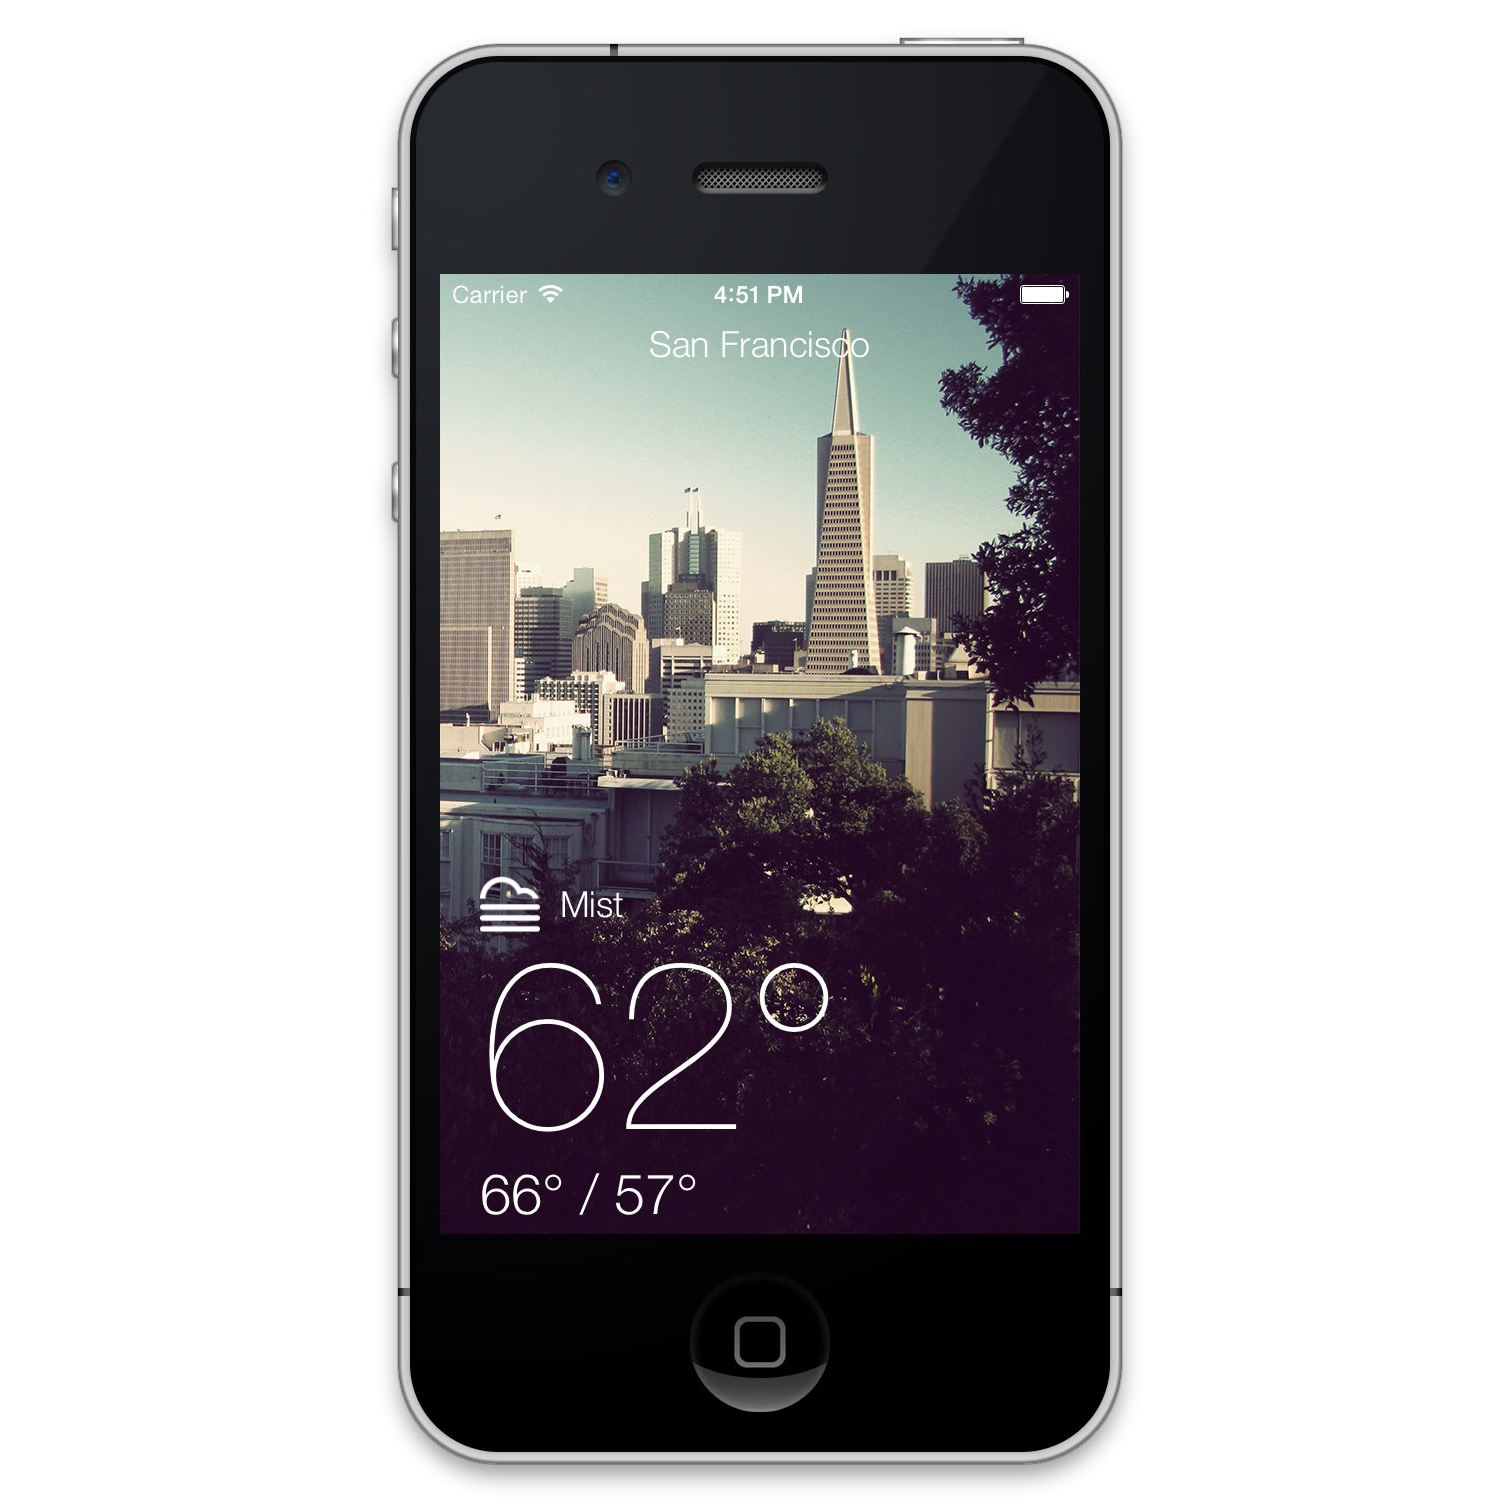 Ios 7 Best Practices A Weather App Case Study Part 2 Description Three Light Switches With Exposed Wiringjpg